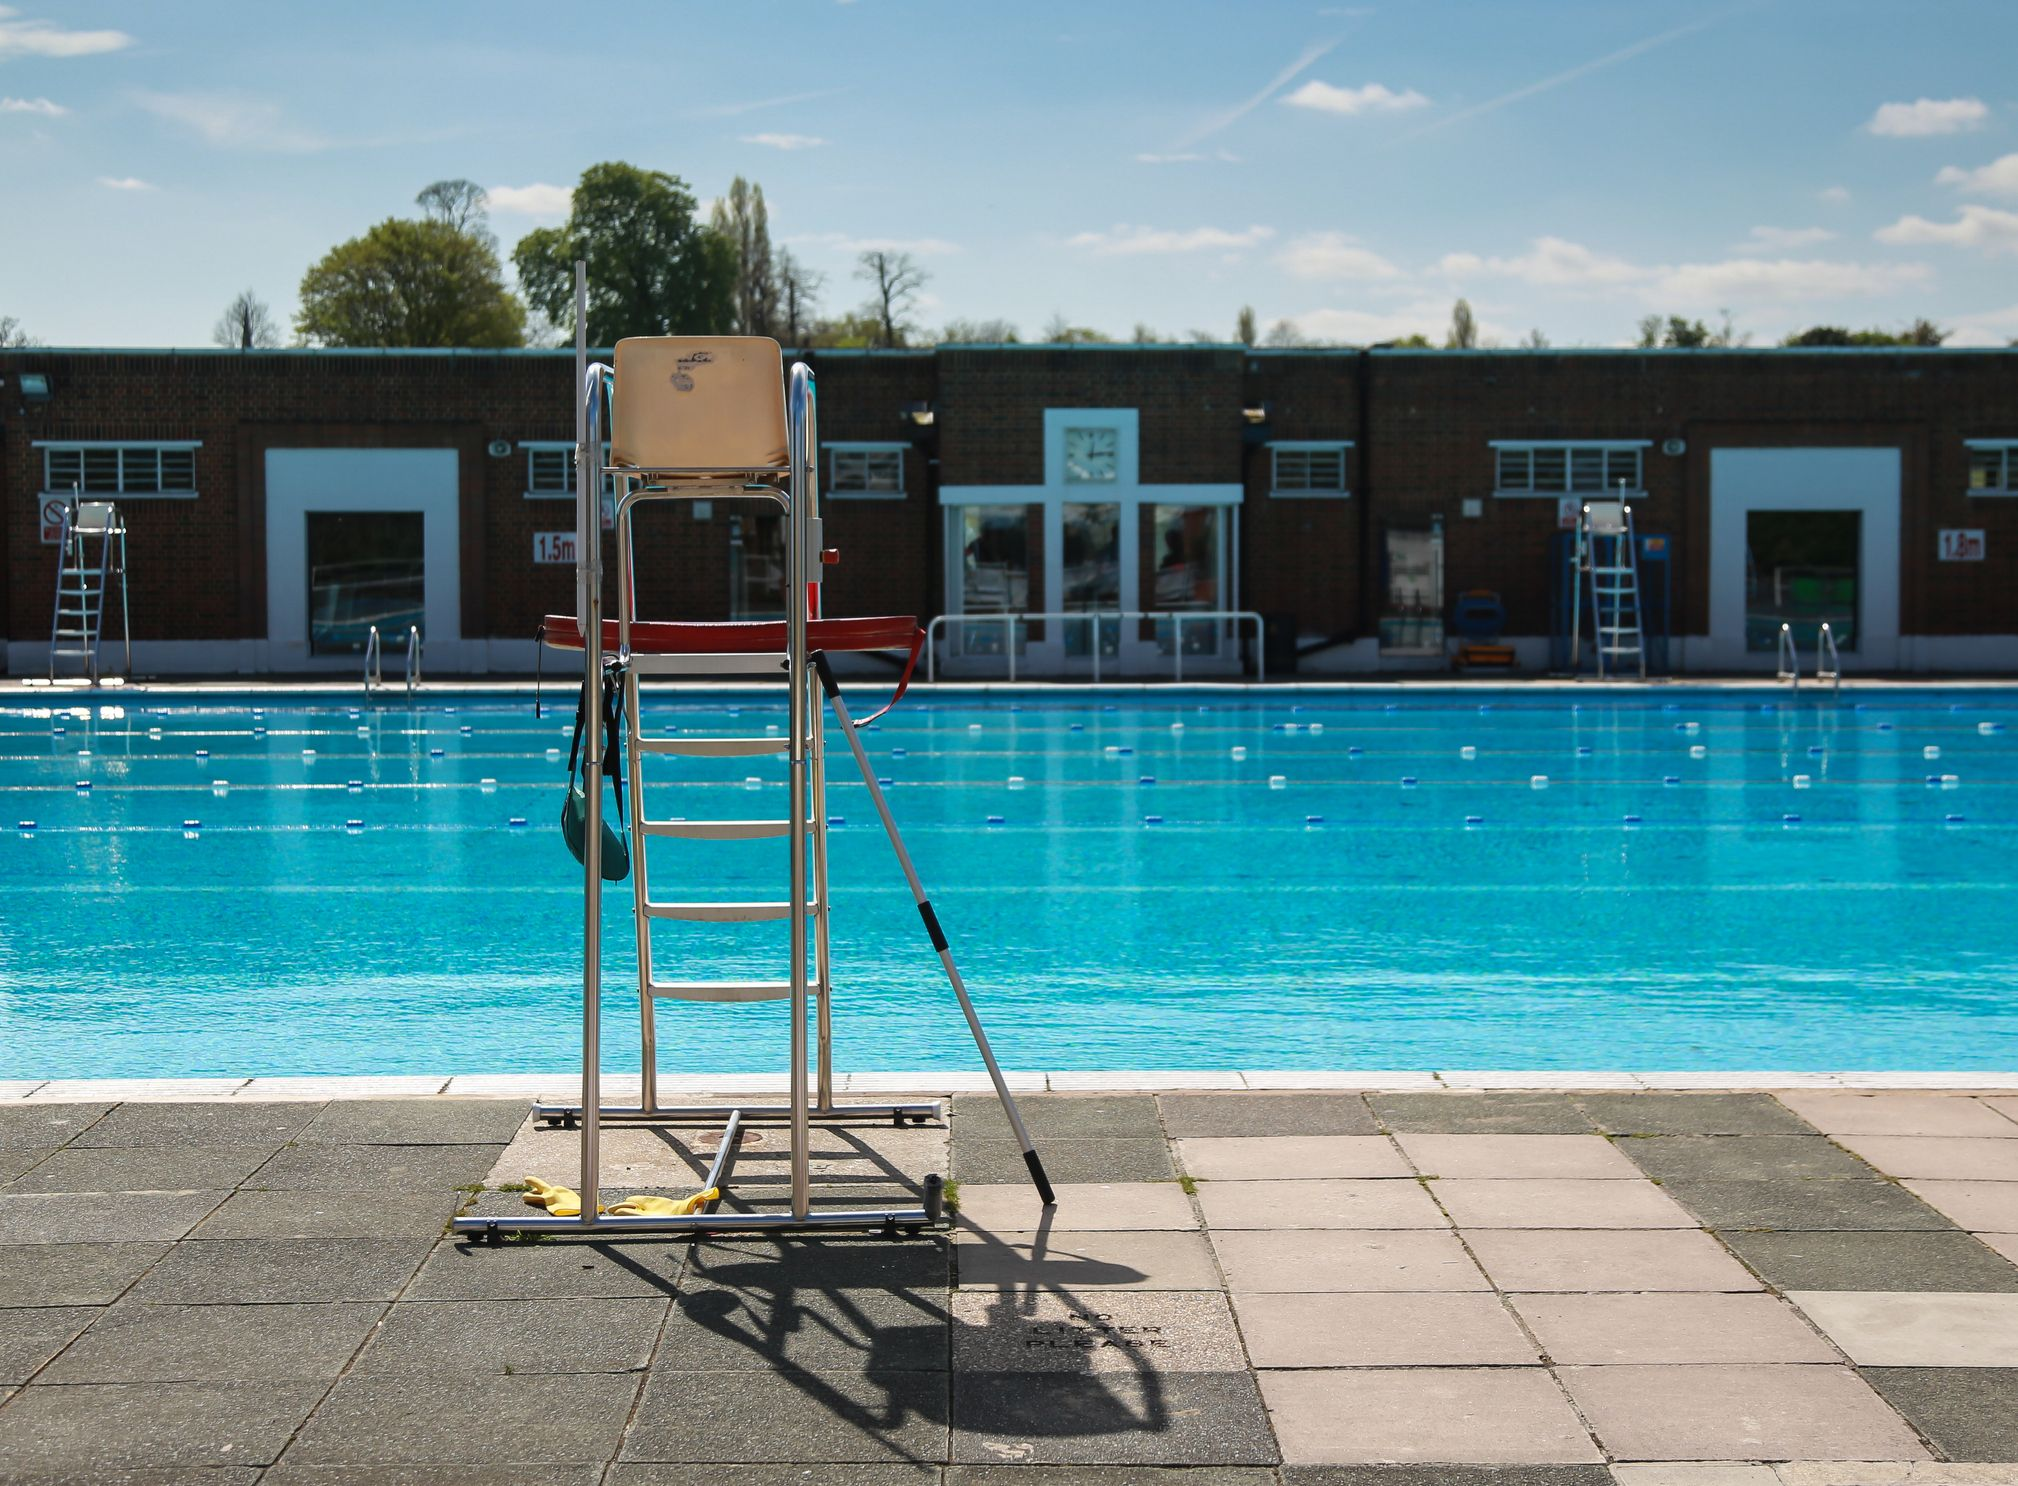 21 Outdoor Pools Near Me Lidos In The Uk For Post Lockdown Fun